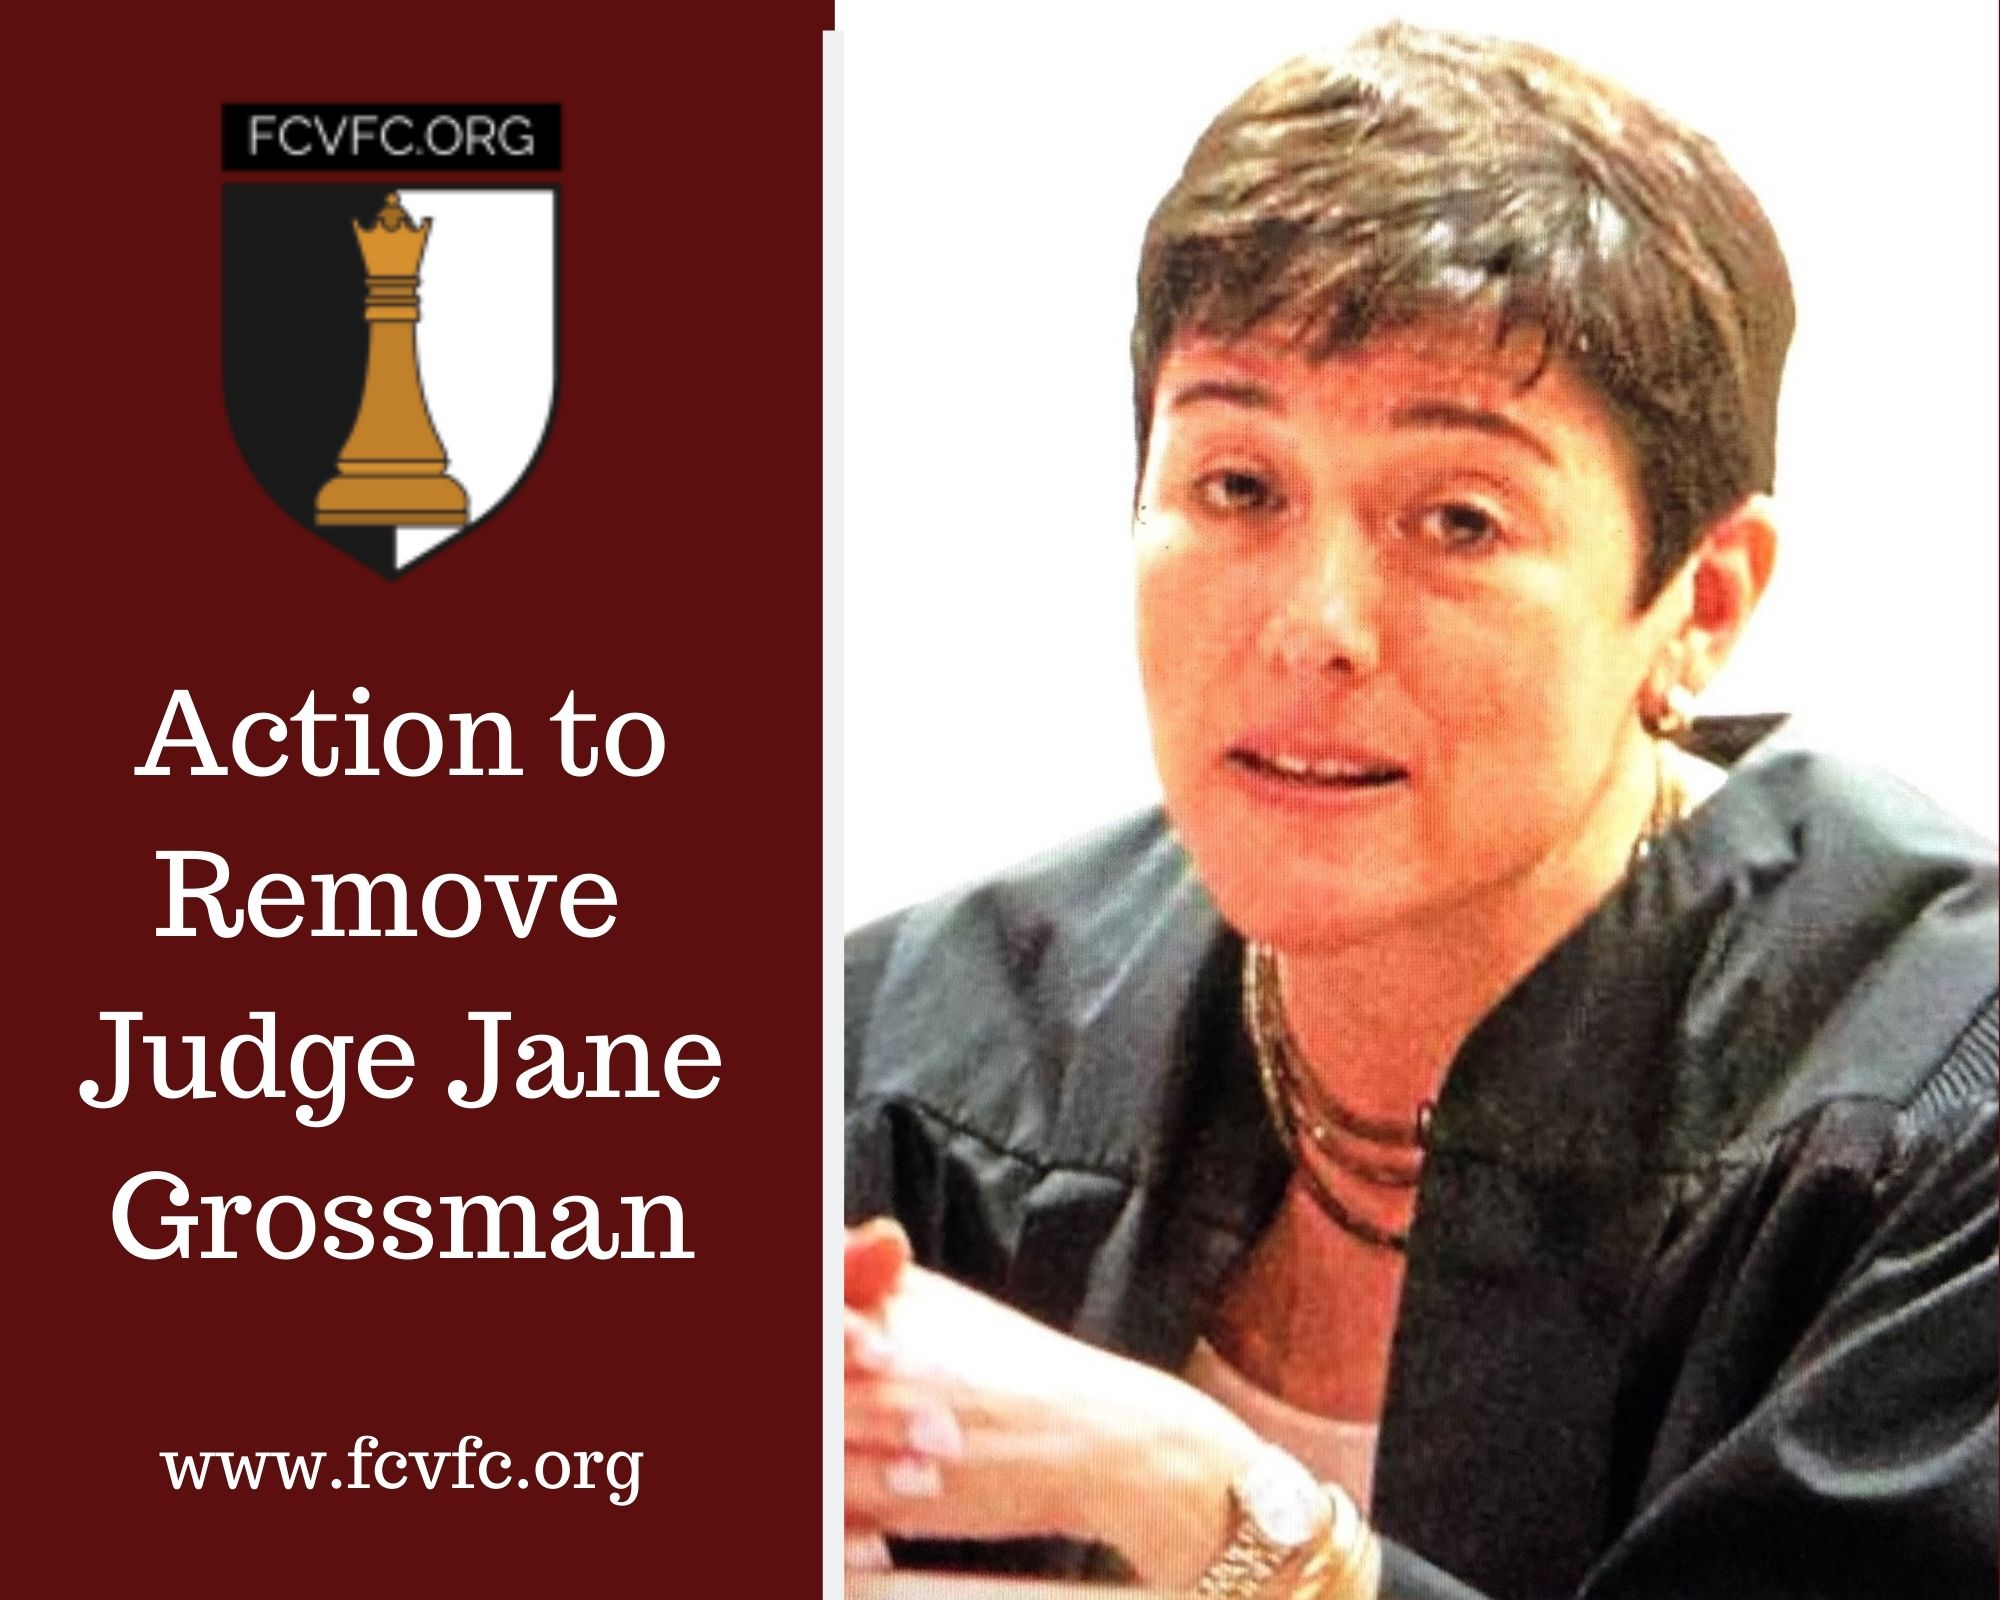 Action to Remove Judge Jane Grossman